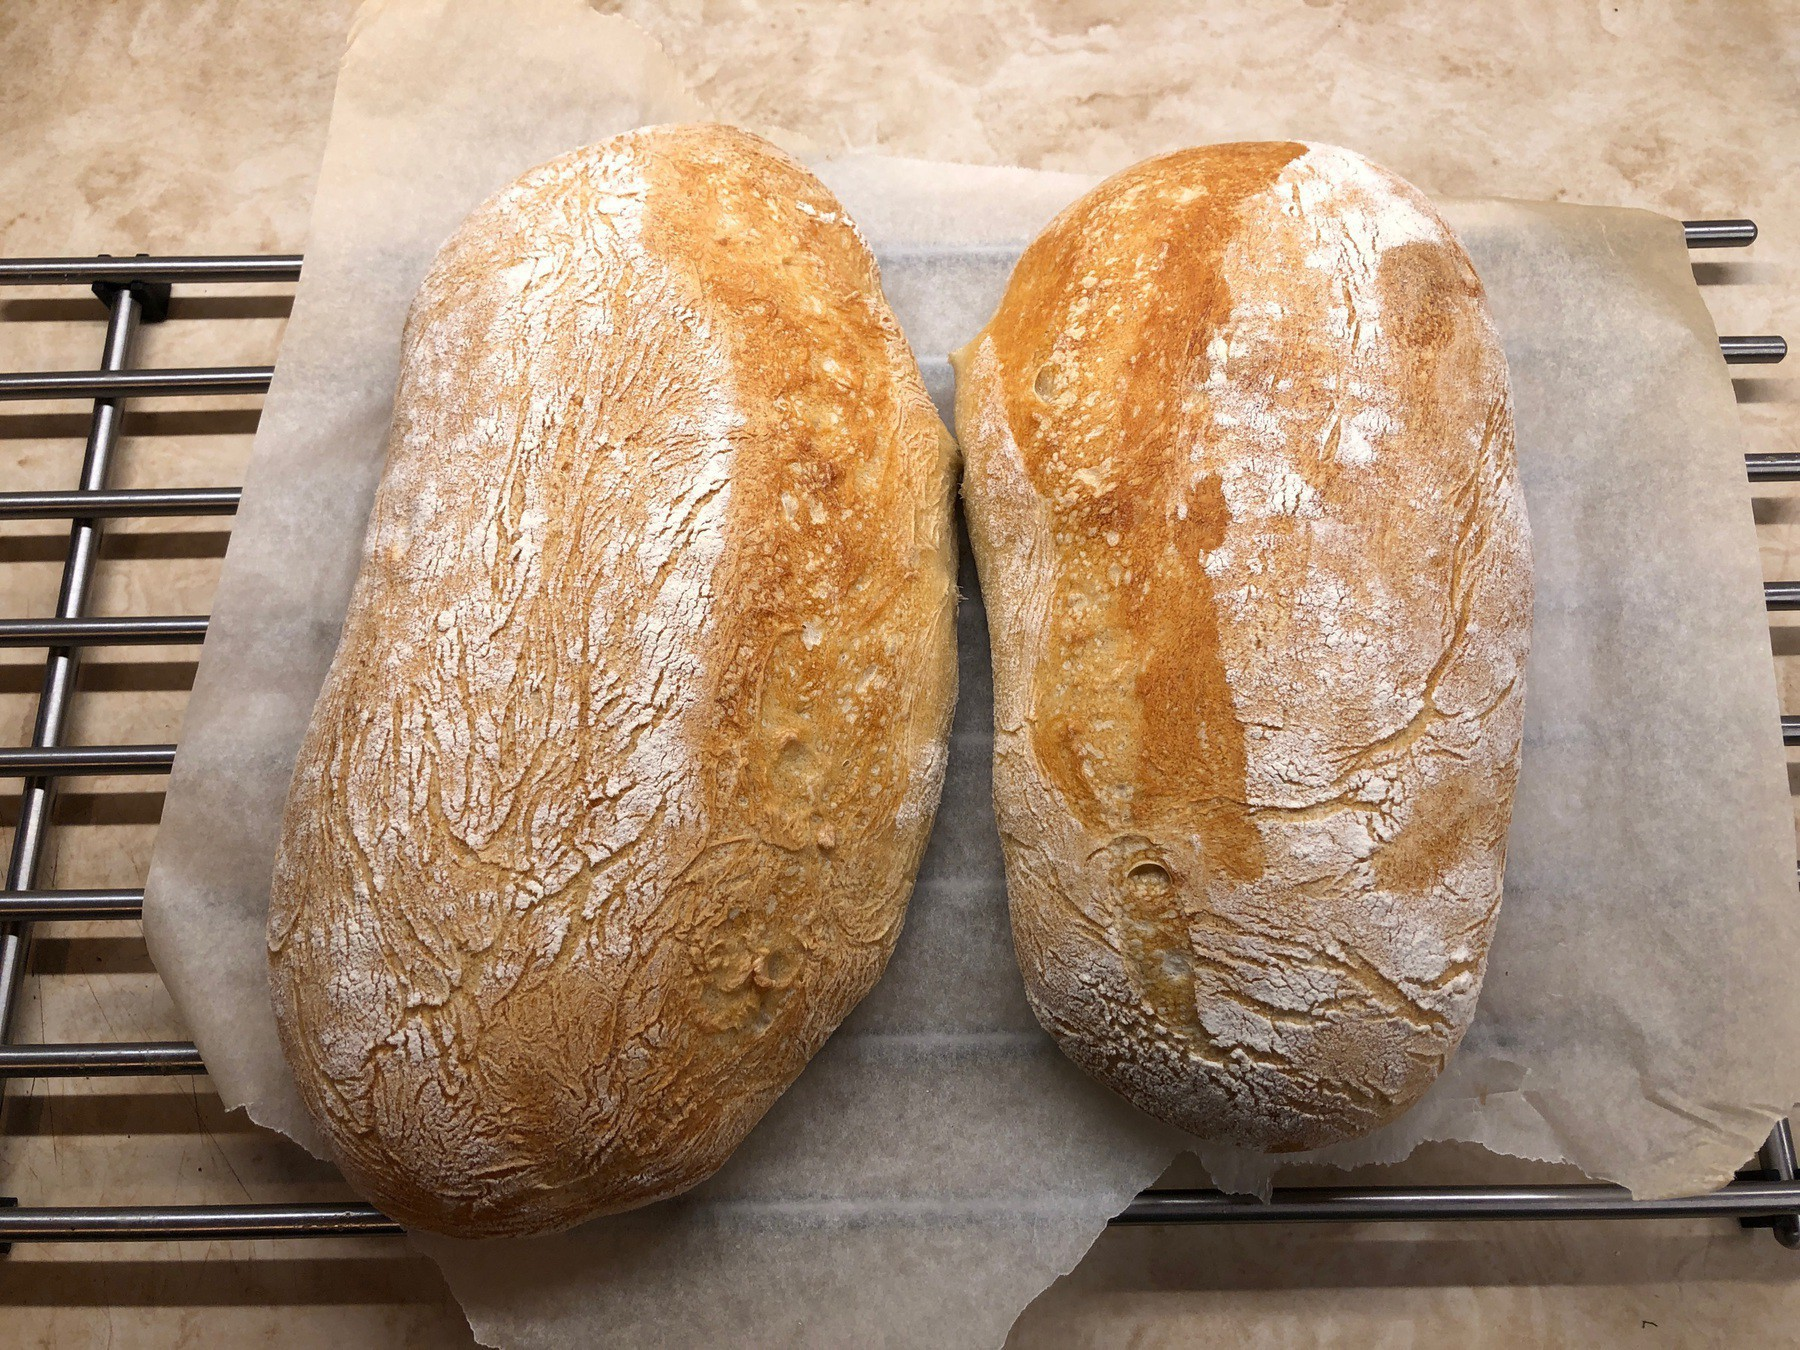 Two loaves of bread cooling.